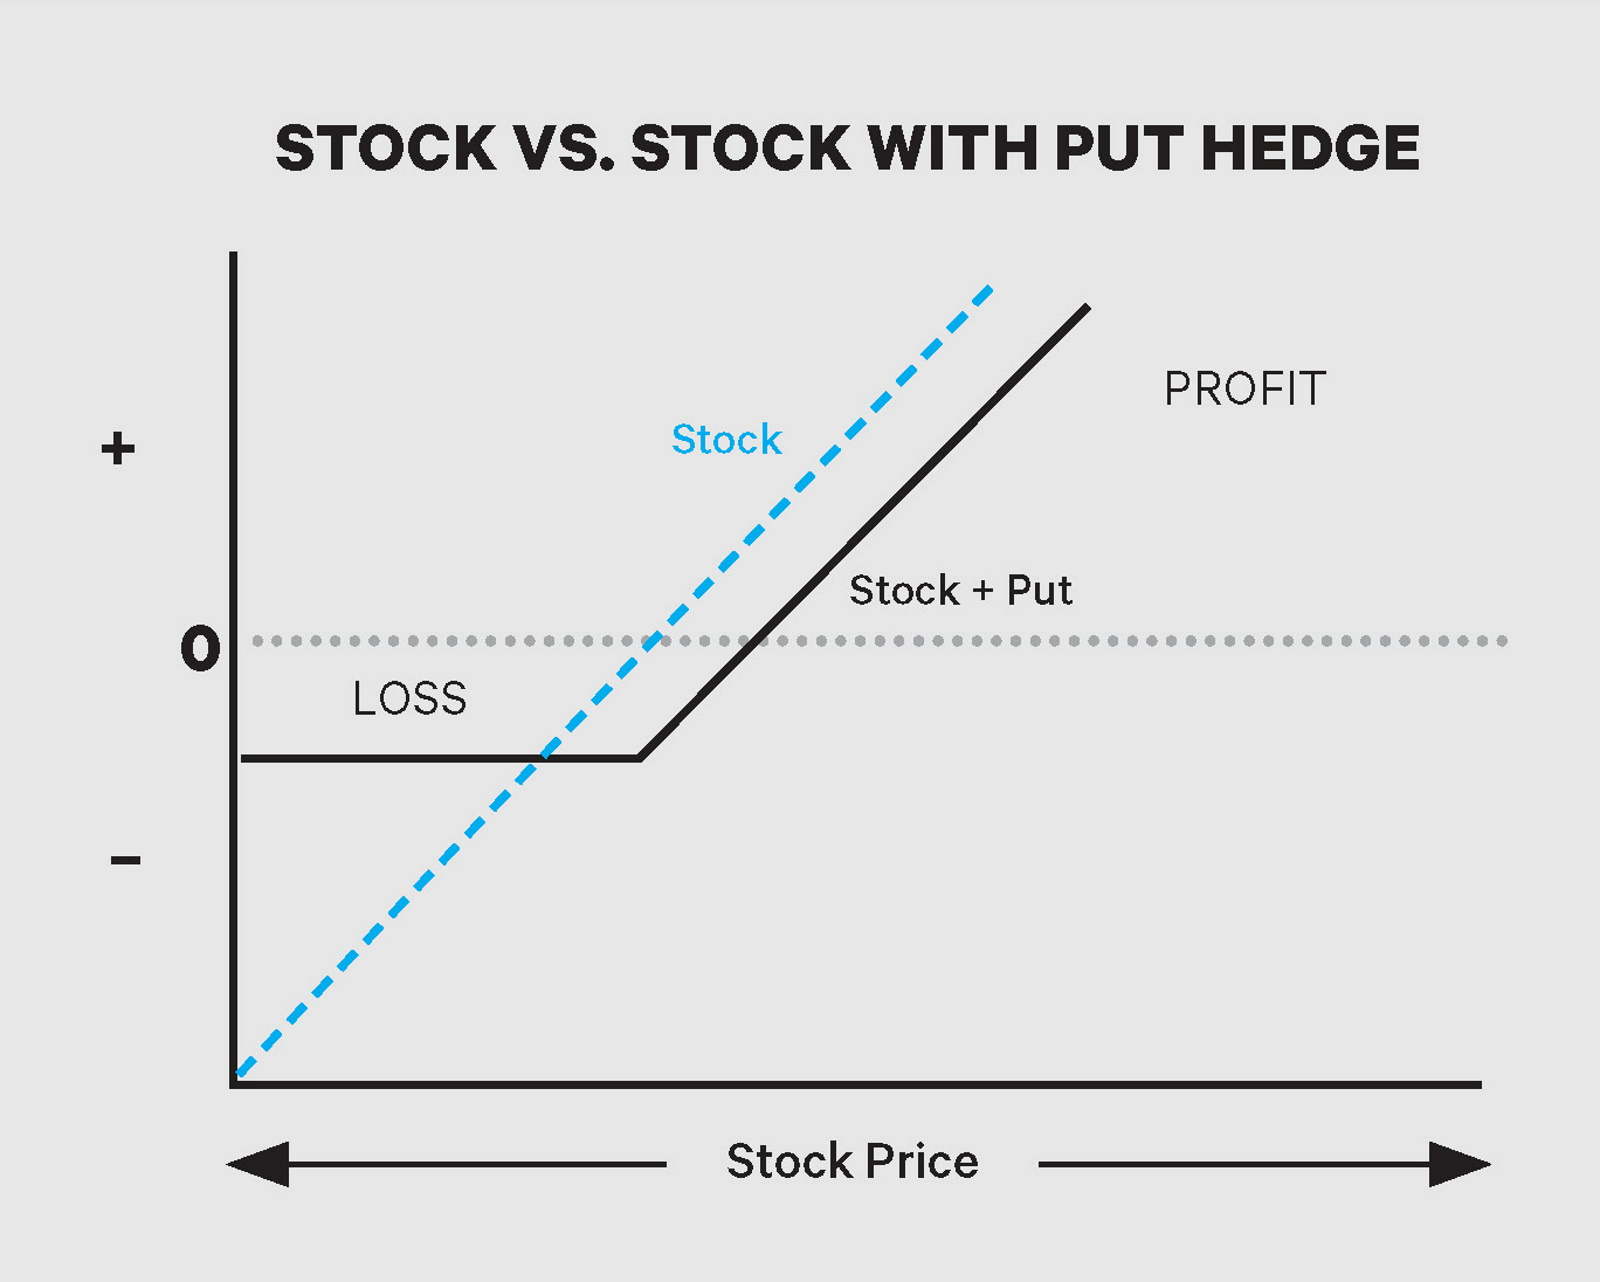 Risk curve of stock and stock with put hedge